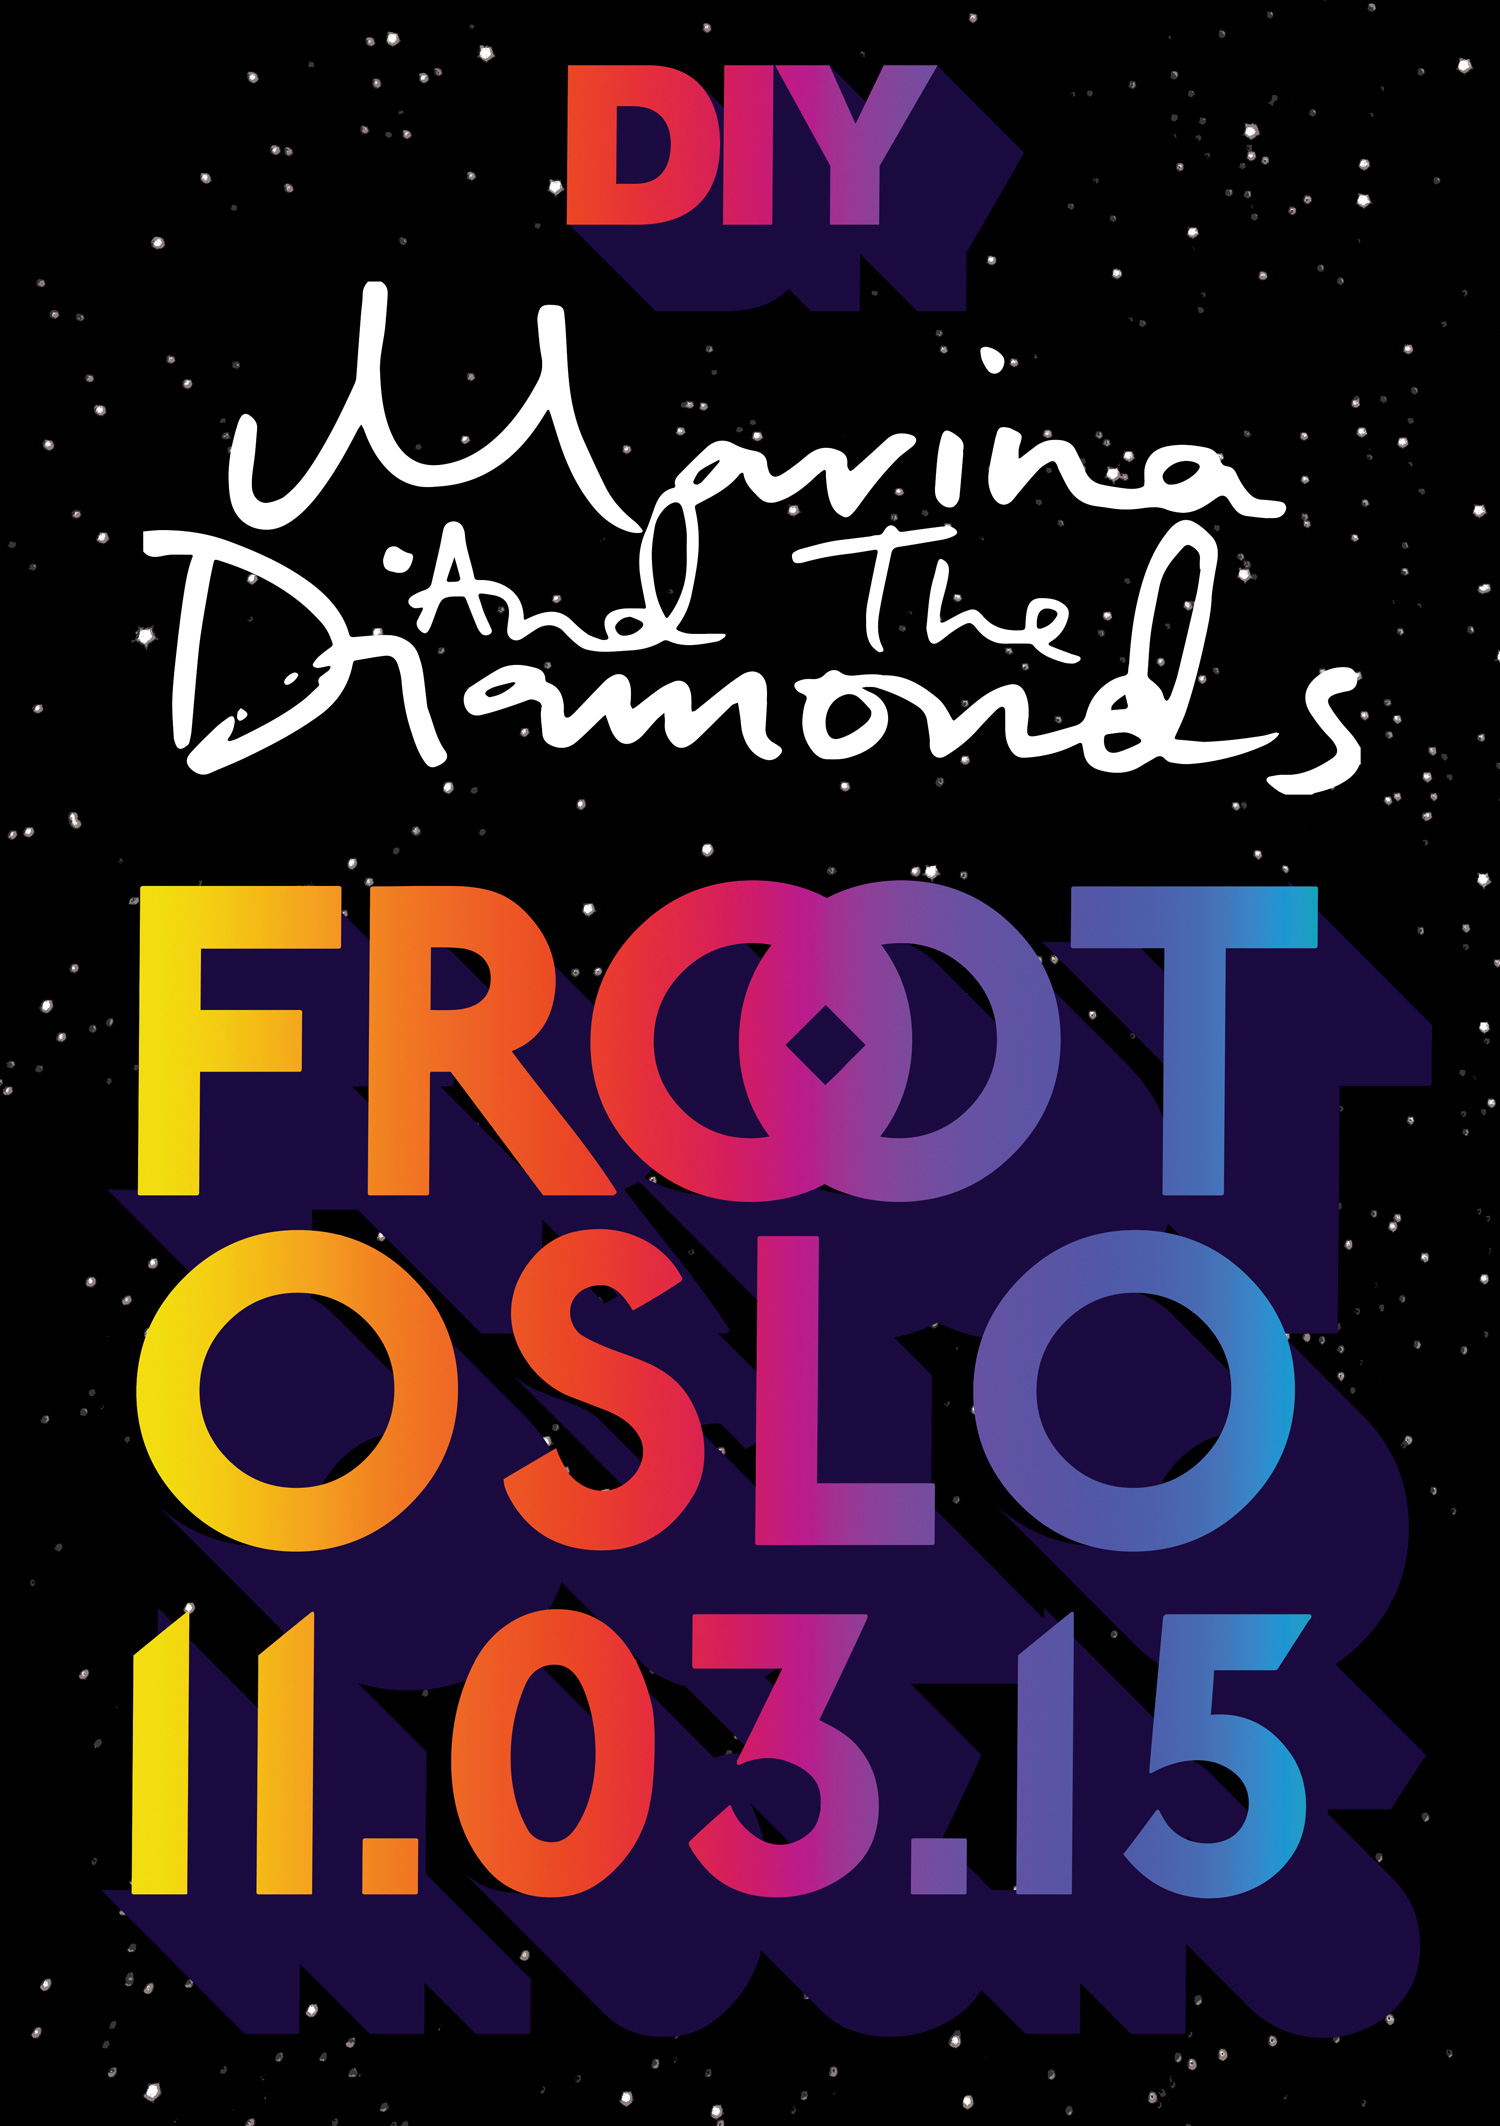 Marina and the Diamonds announces one-off intimate DIY Presents show